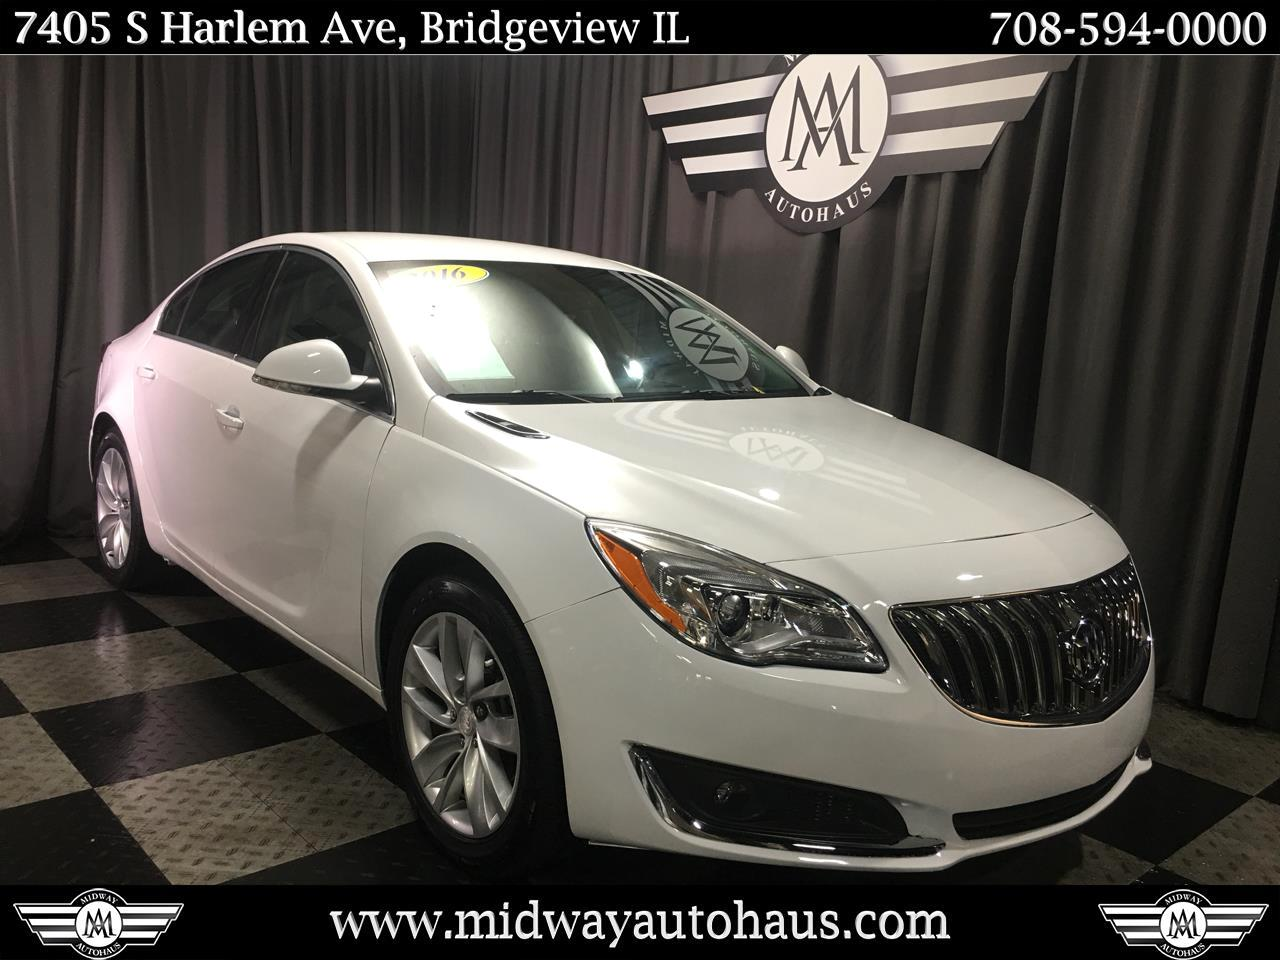 Pre-Owned 2016 Buick Regal 4dr Sdn Premium I AWD